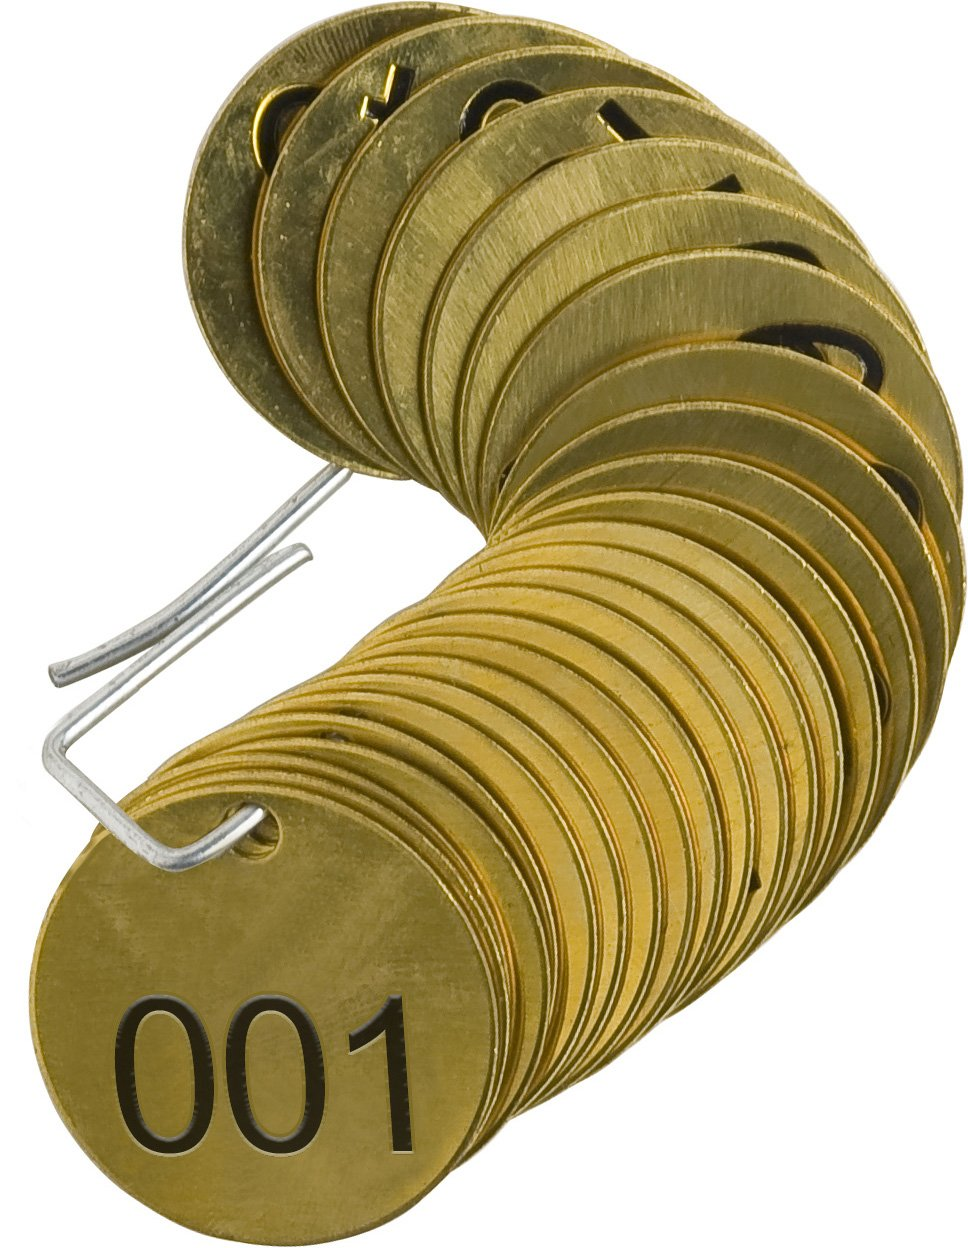 Brady 23200 1-1/2'' Diameter, B-907 Brass, Brass Color, Number Sequence 001-025 Round Stamped Brass Valve Tags, Top Line Legend (Blank) (Pack Of 25)